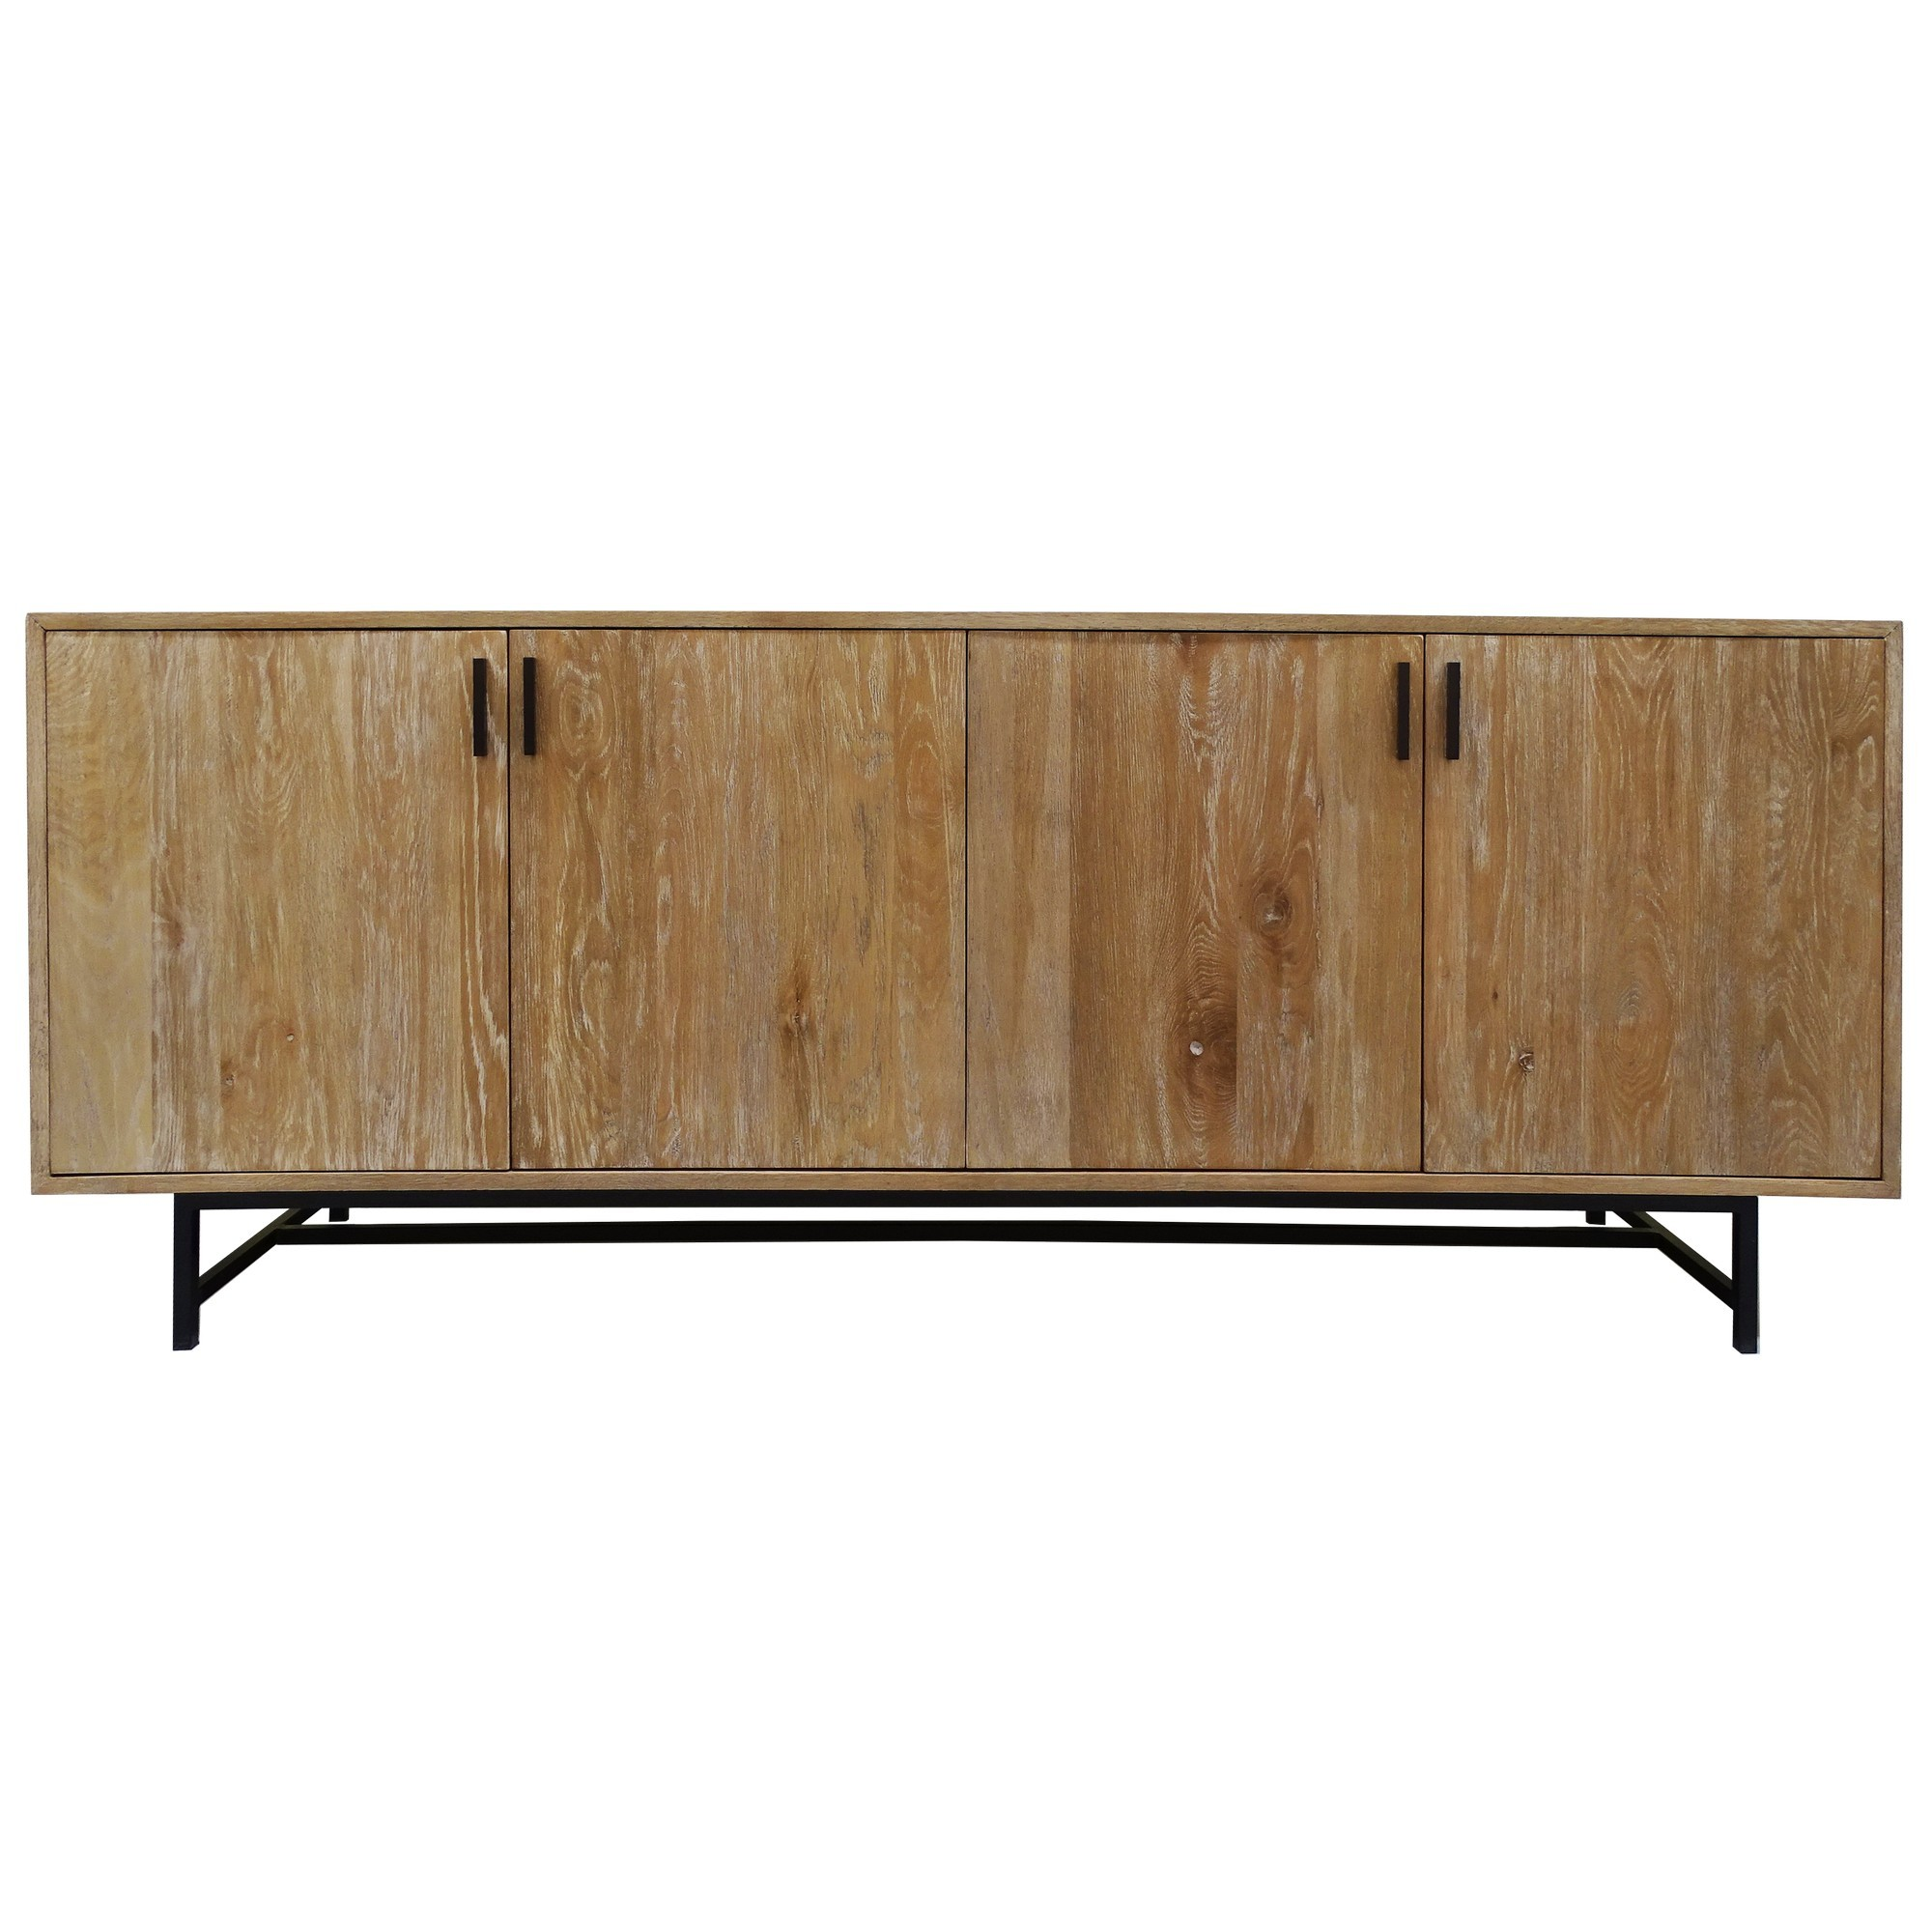 Rhonda Oak Timber 4 Door Buffet Table, 200cm